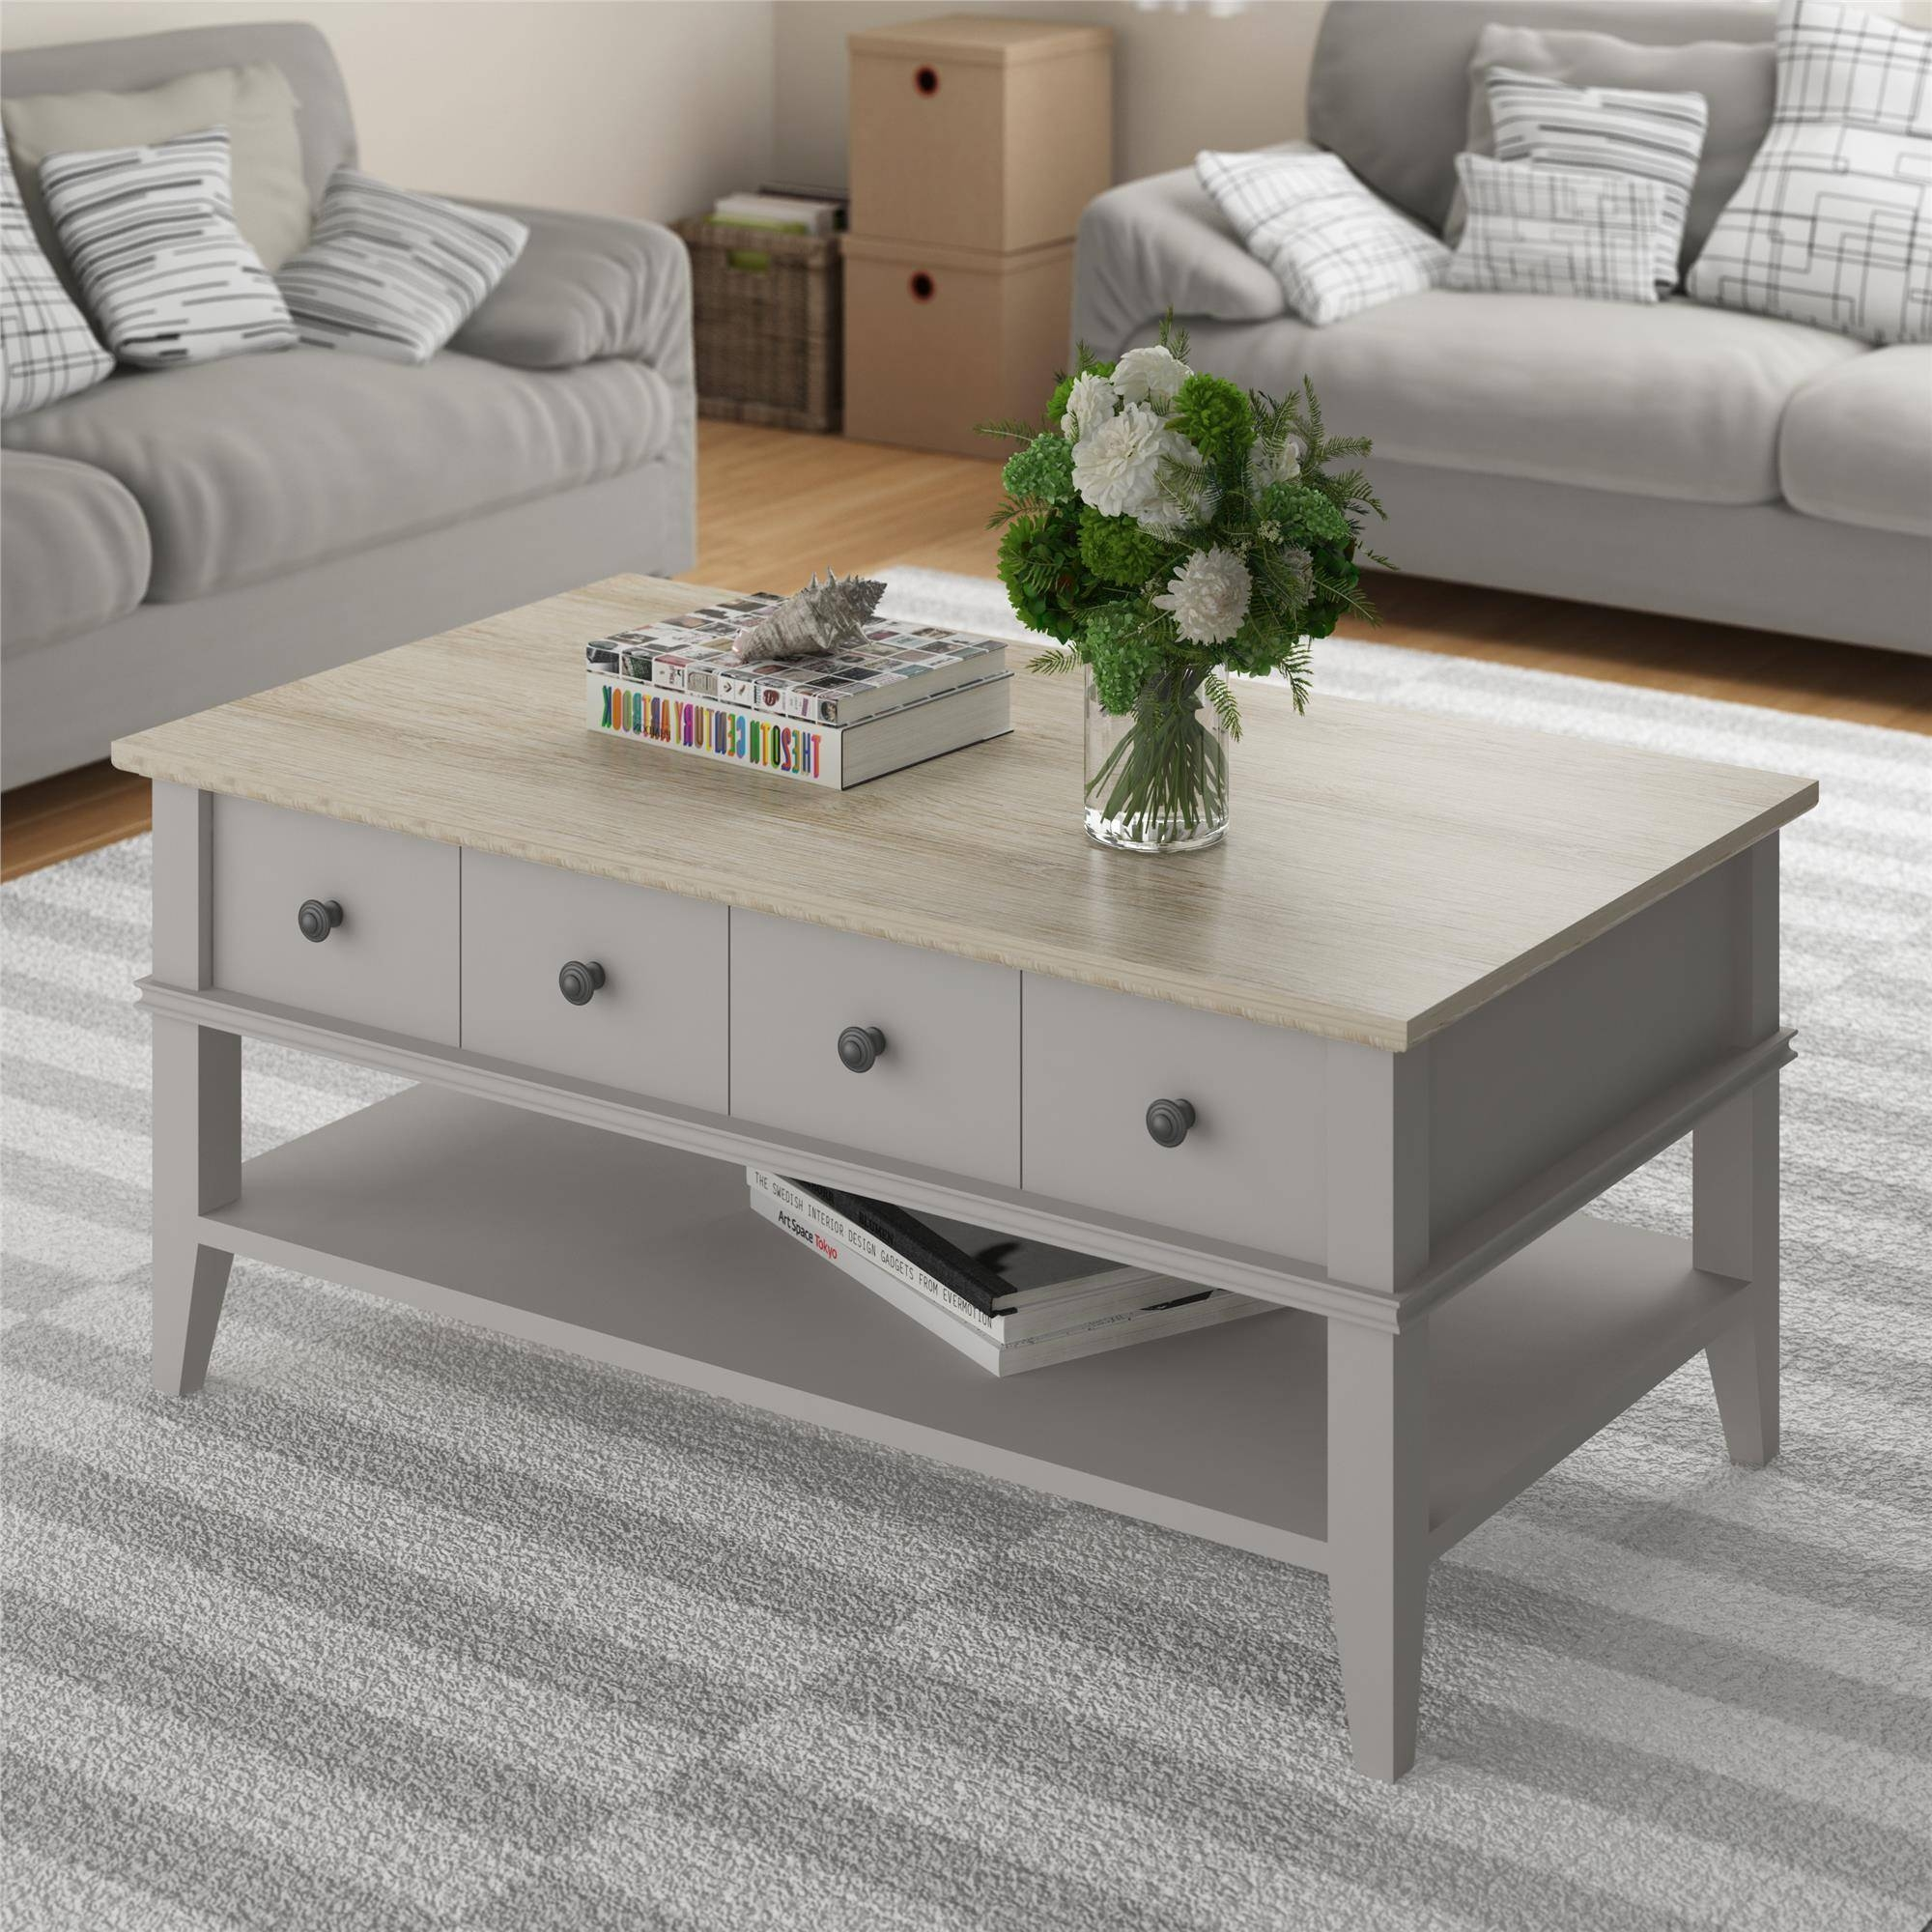 Ameriwood Furniture | Newport Coffee Table, Taupe/natural inside Light Oak Coffee Tables With Drawers (Image 1 of 30)